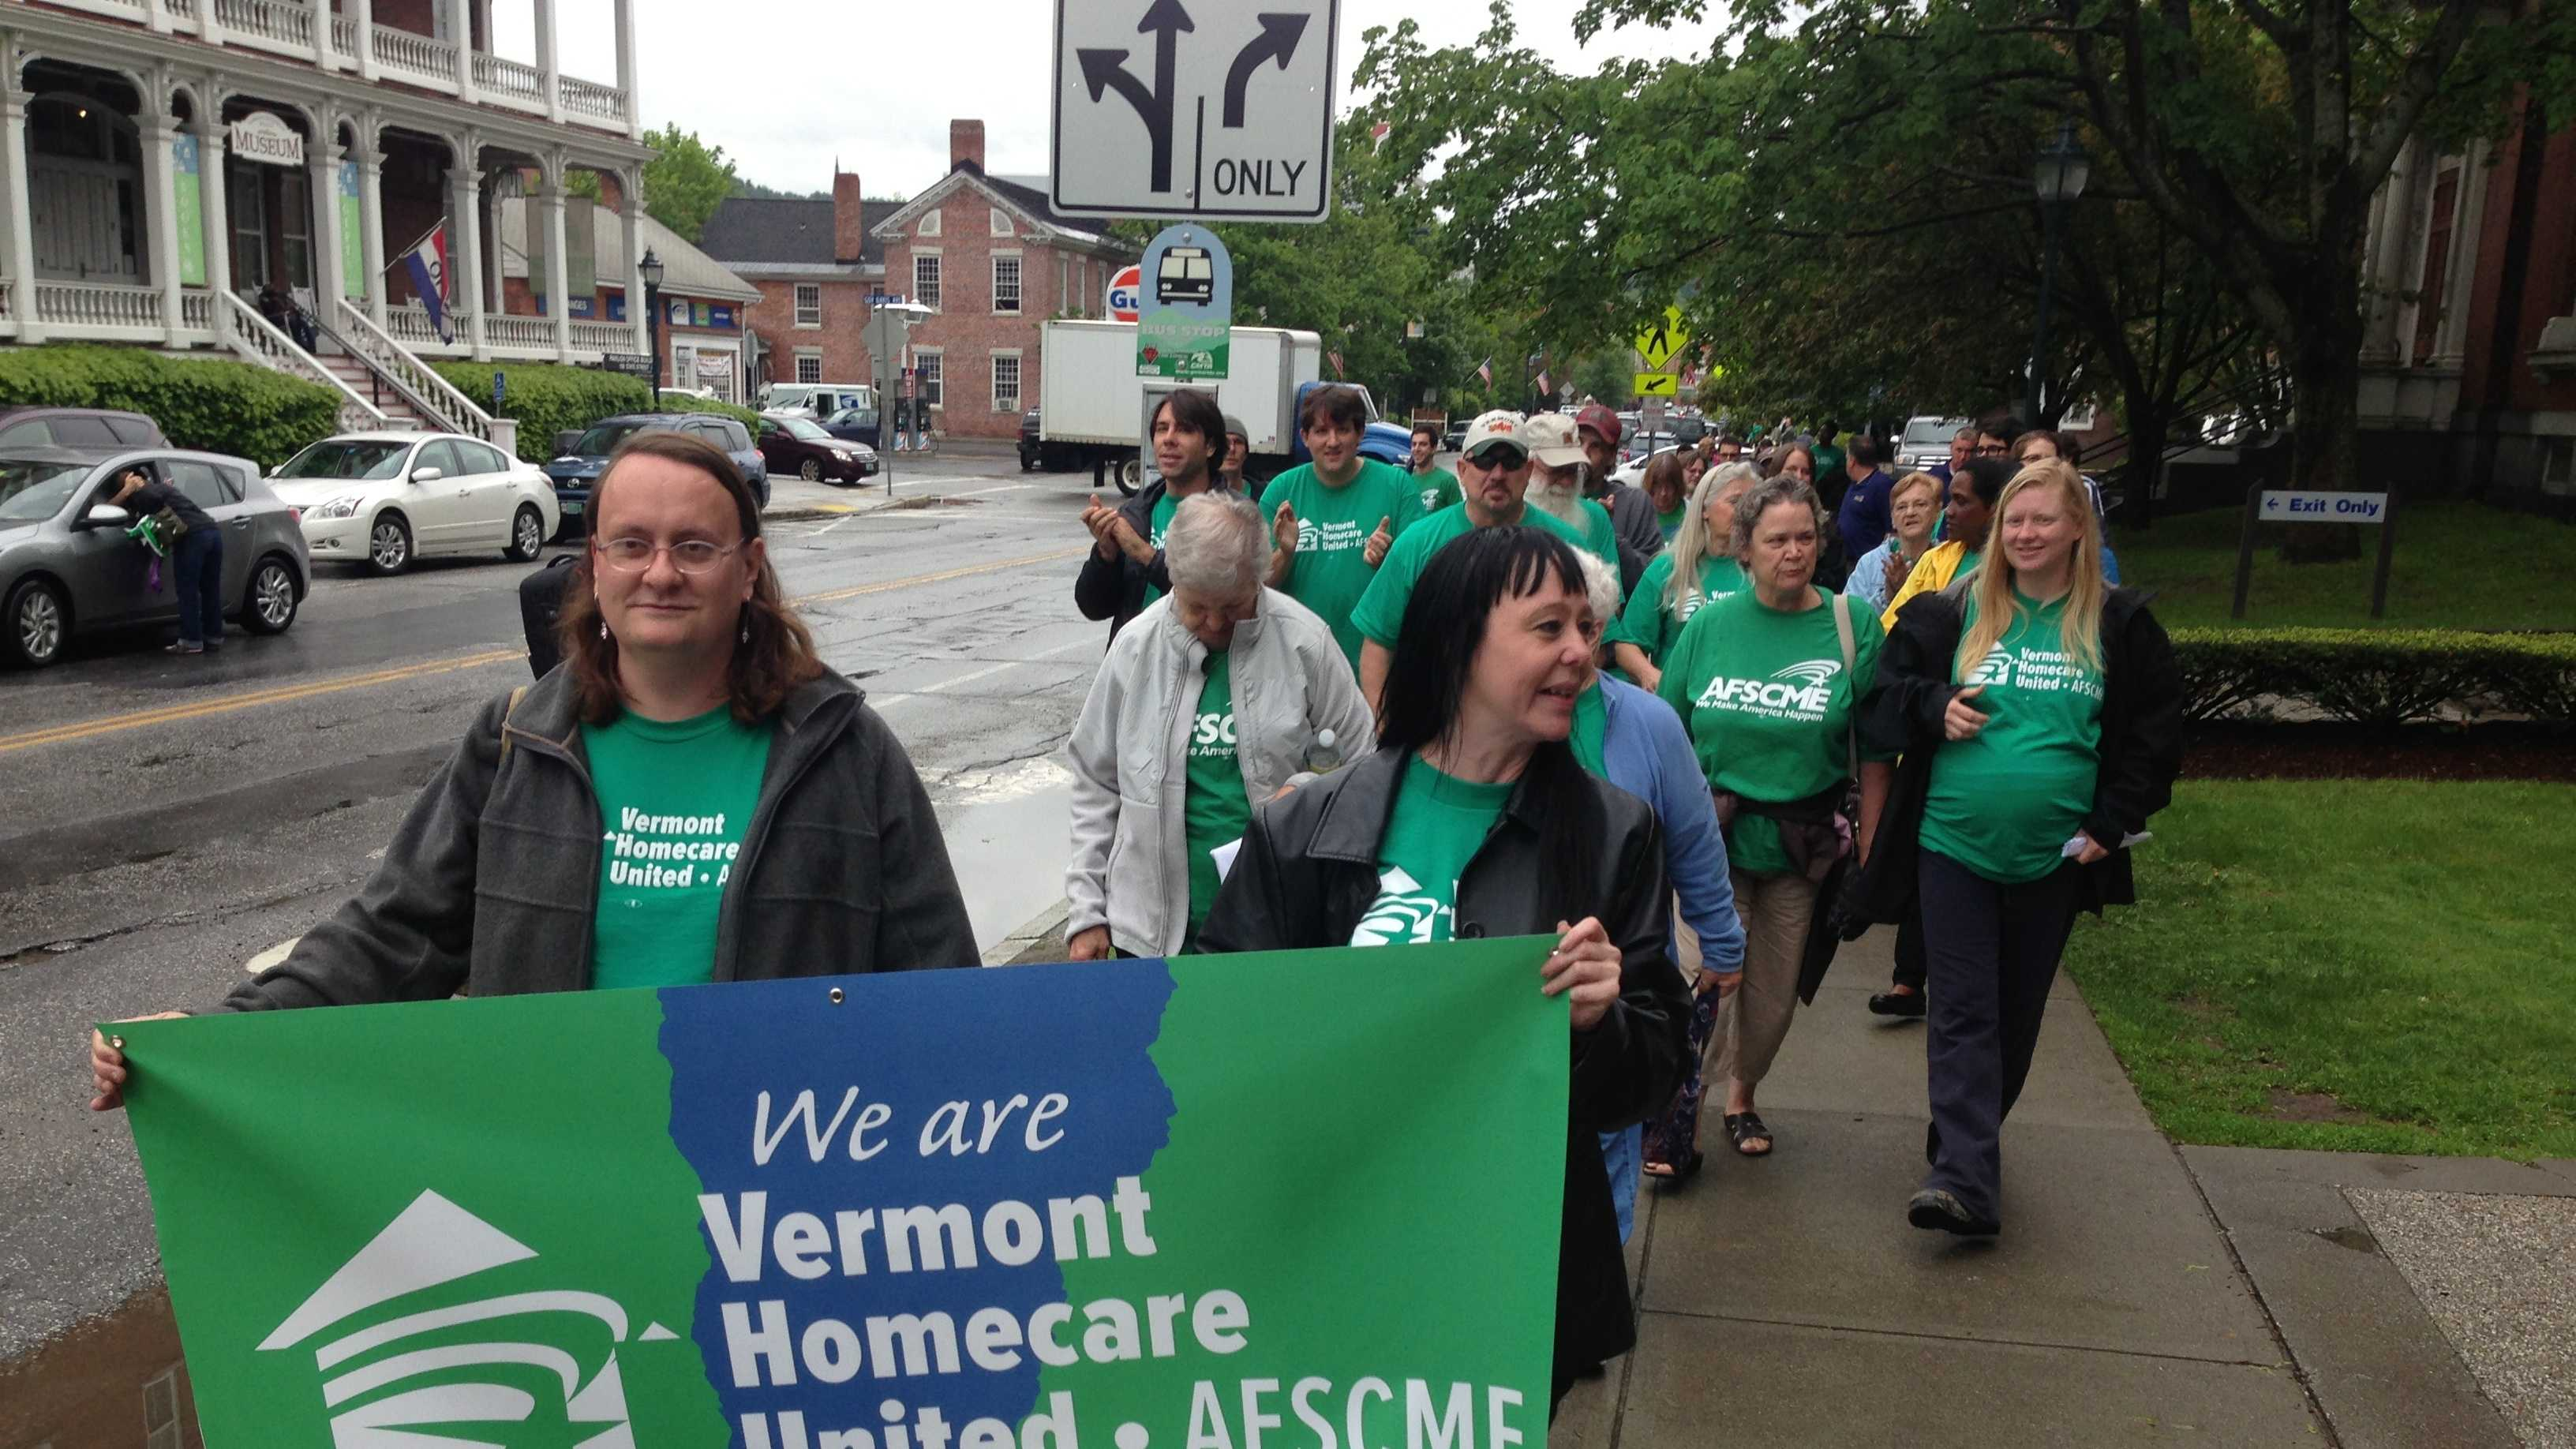 Supporters of the American Federation of State, County and Municipal Employees union march through Montpelier Wednesday.